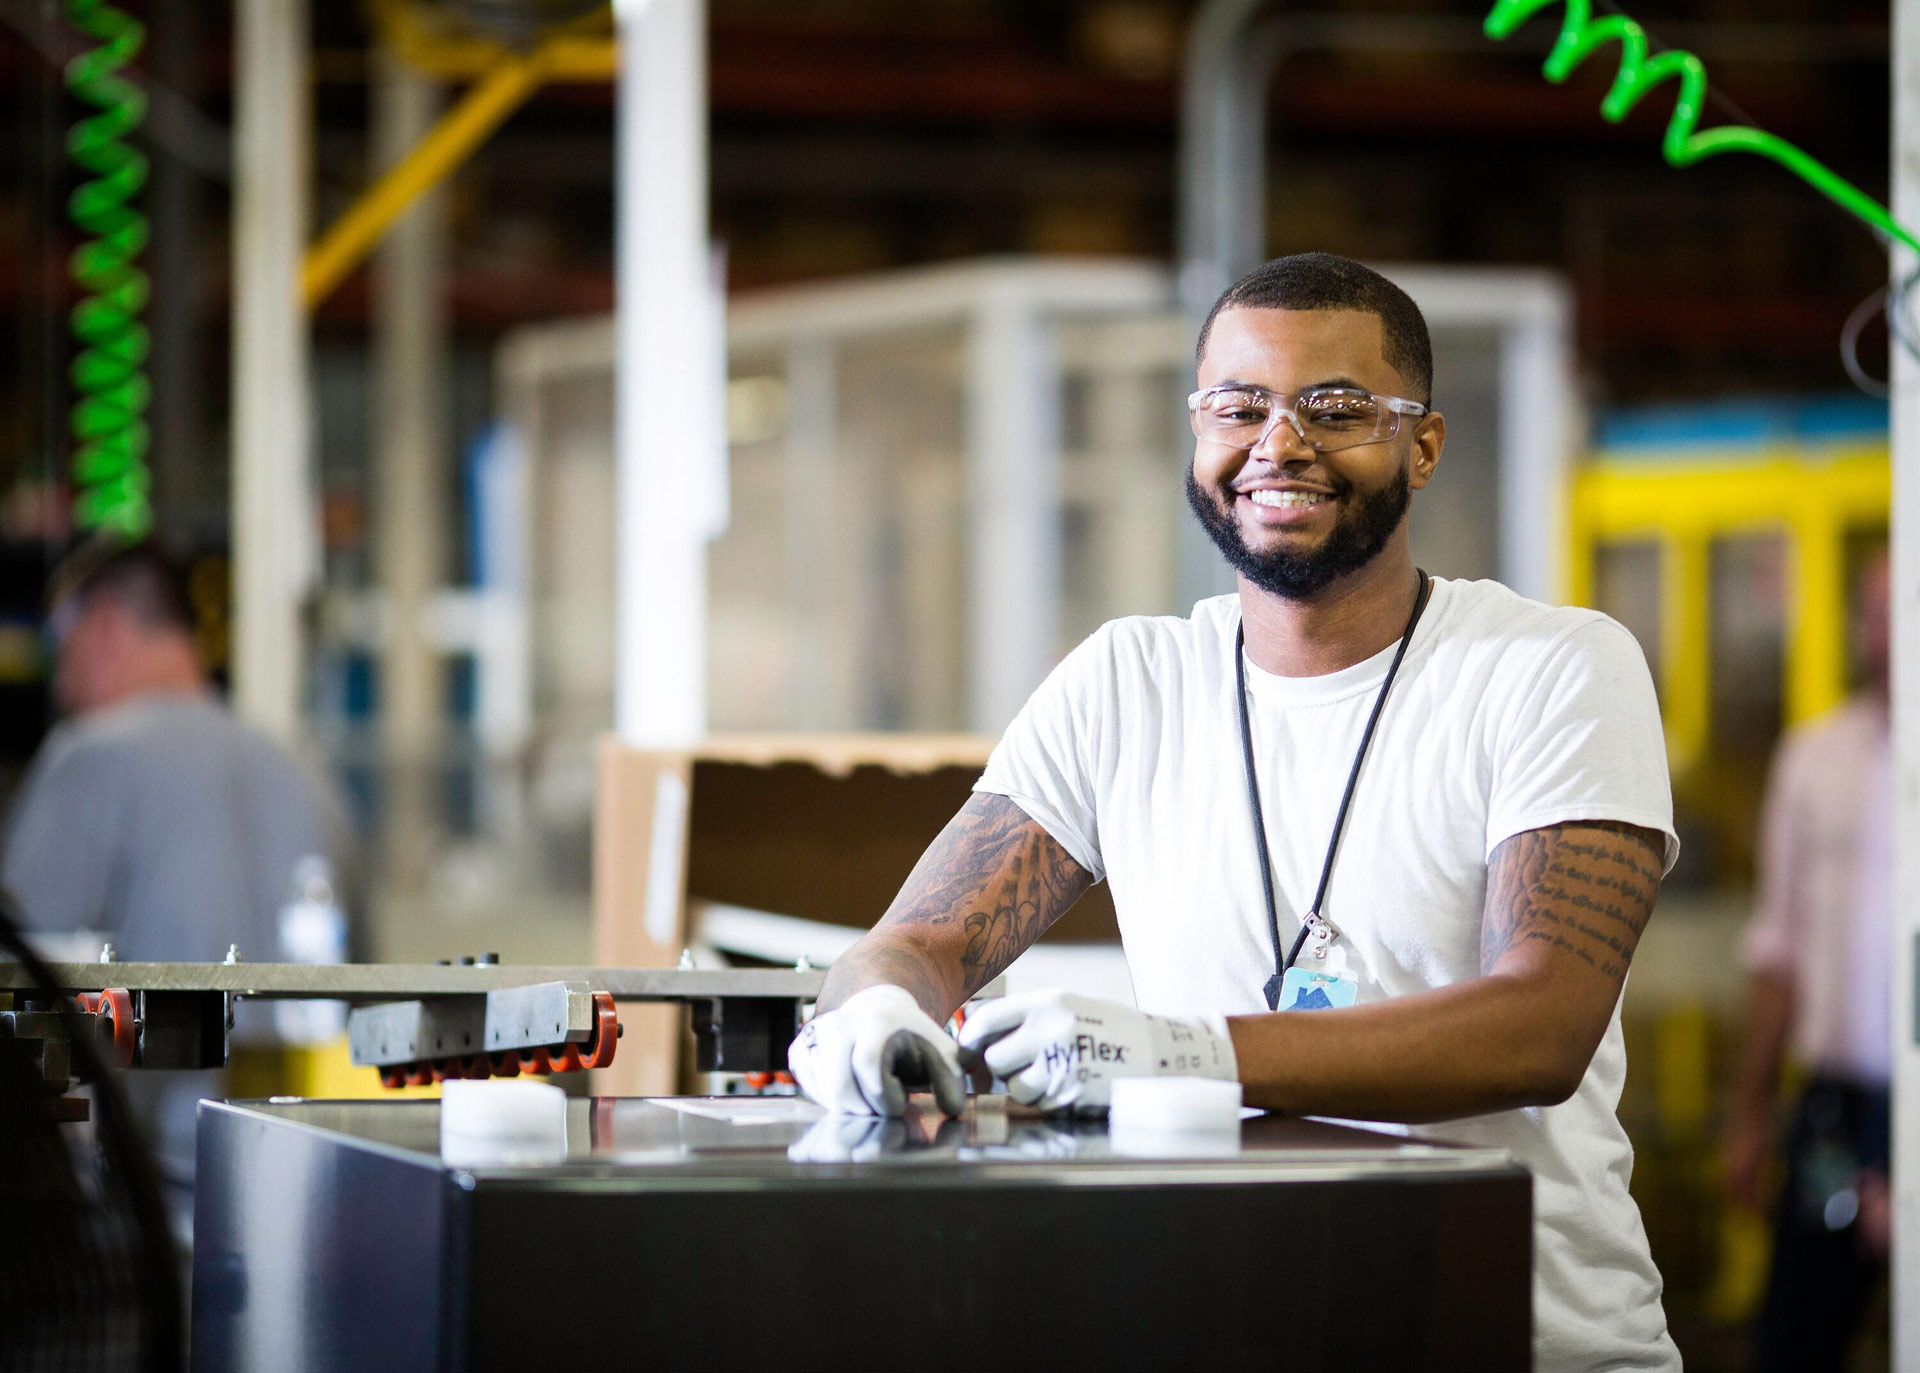 An employee smiles for the camera while wearing safety glasses and gloves in a GE factory.